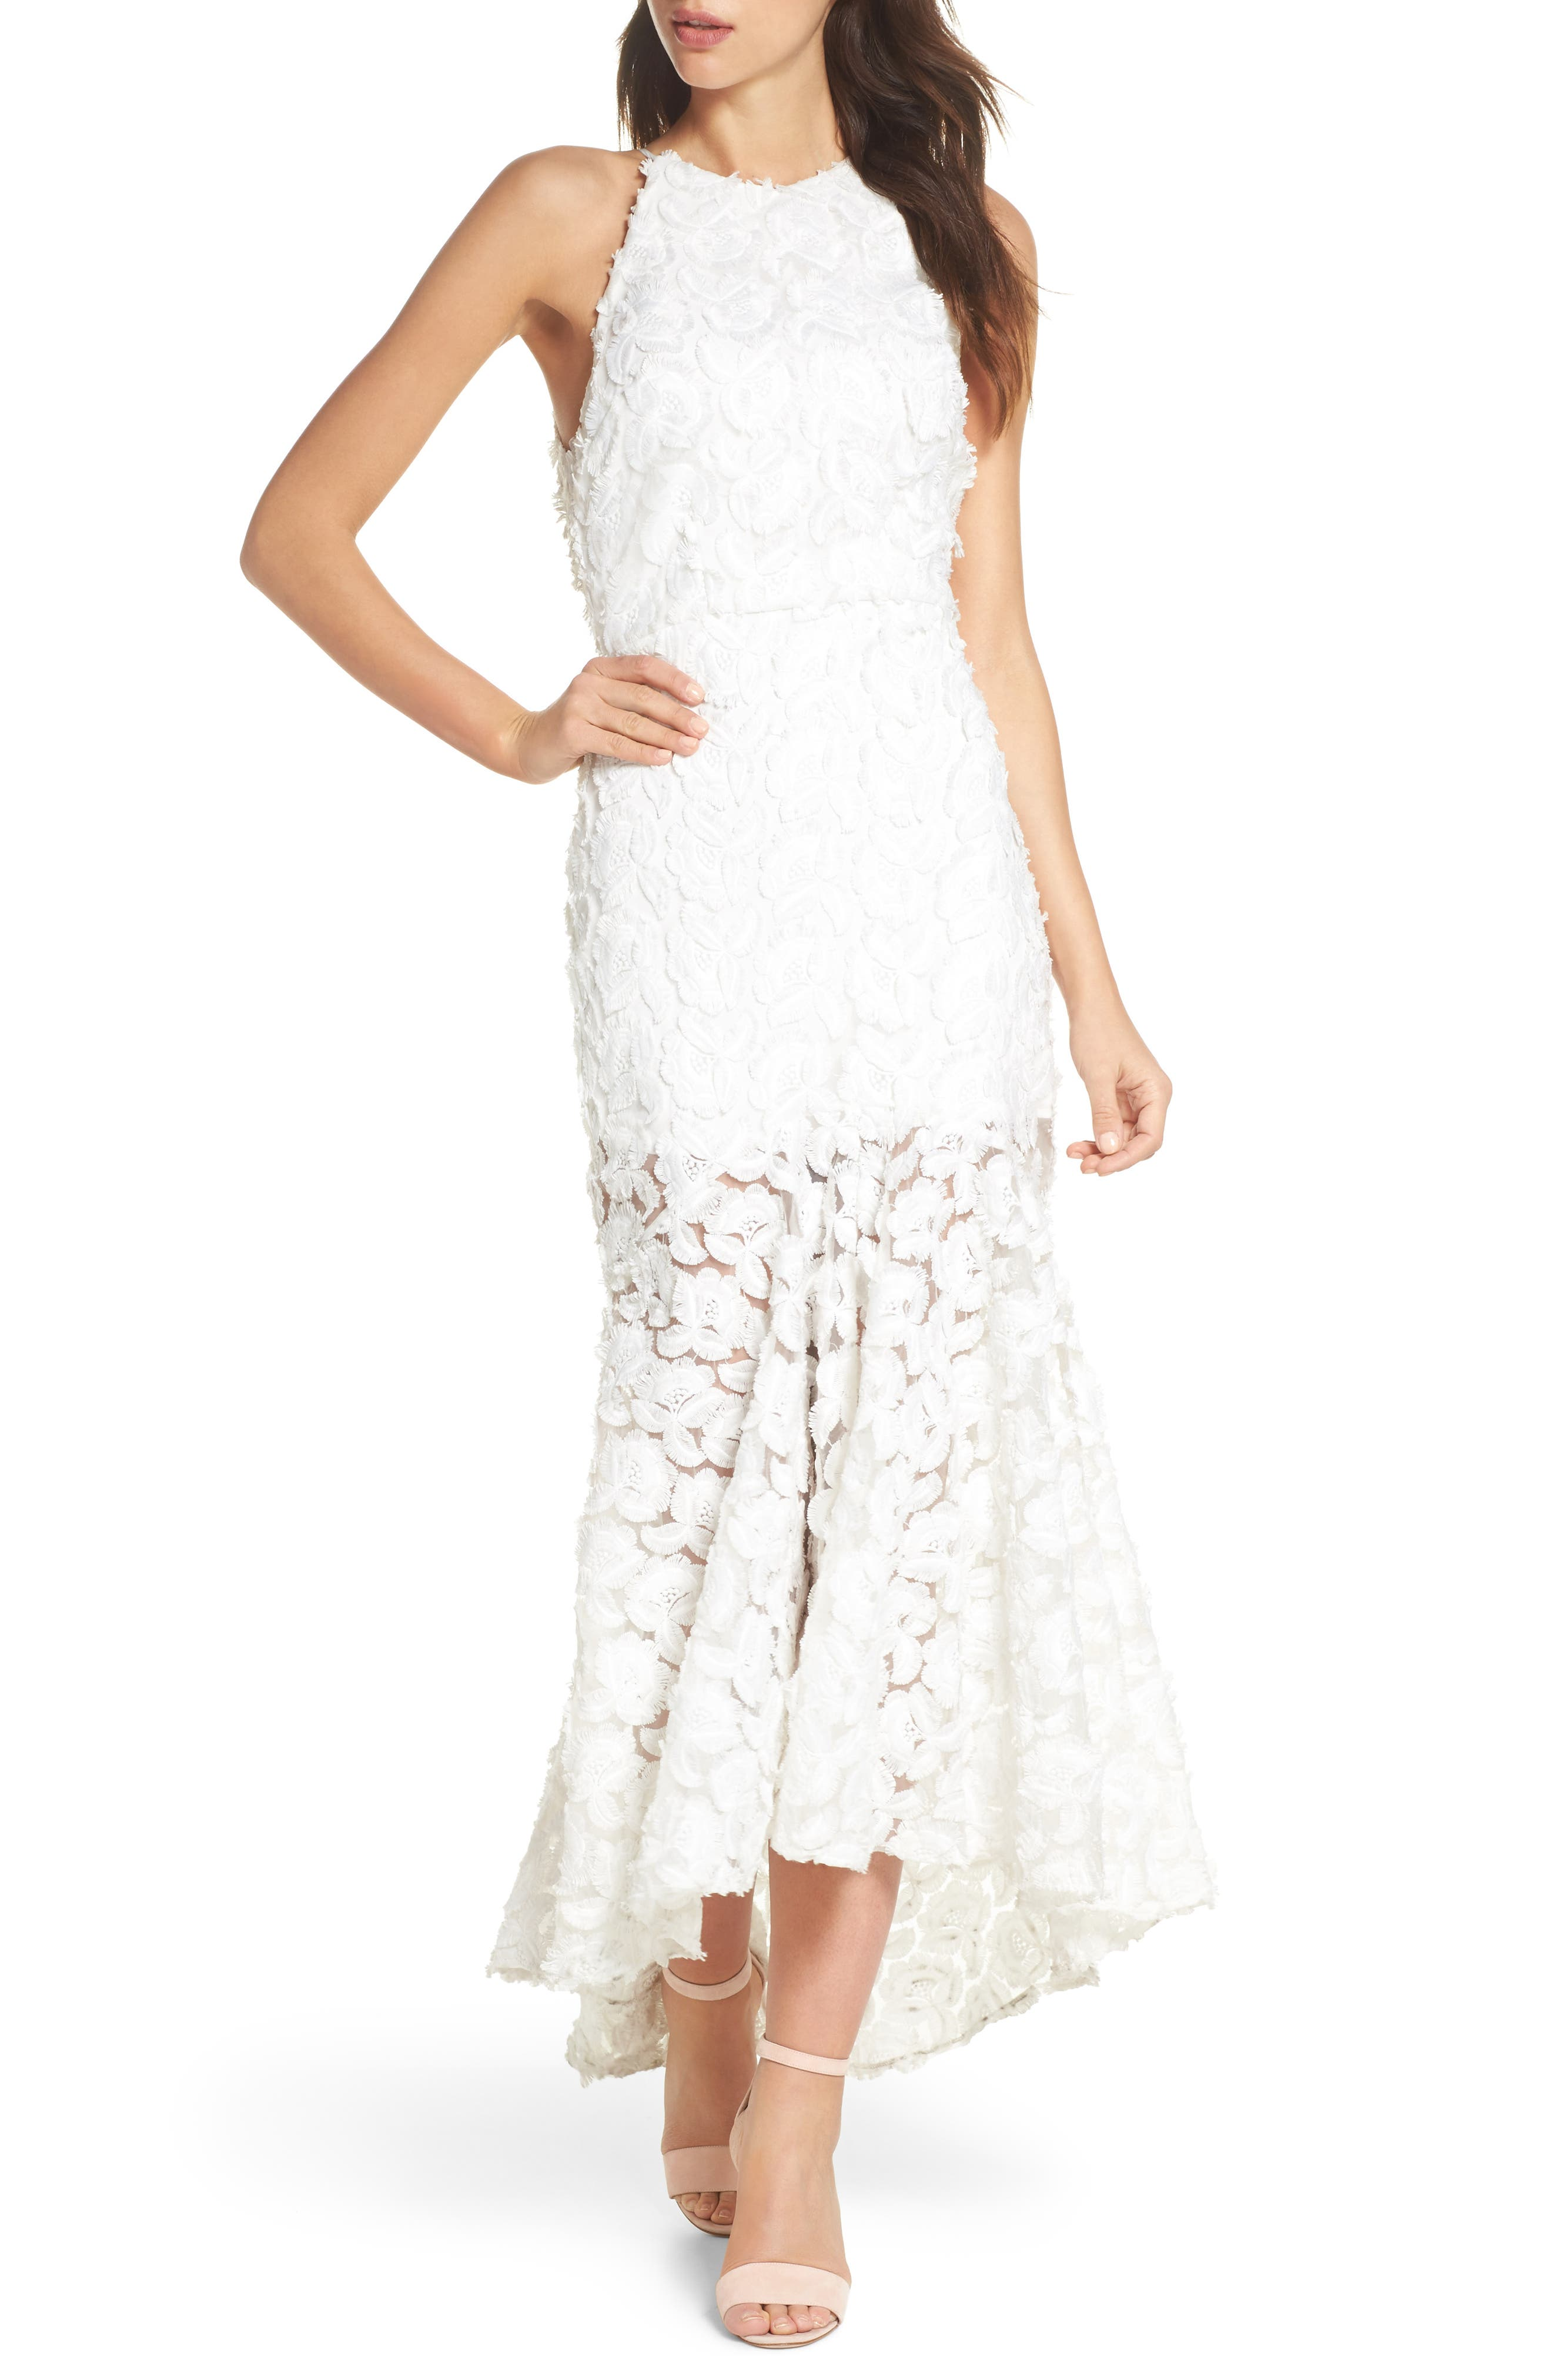 Cooper St Floral Mirage Mermaid Gown